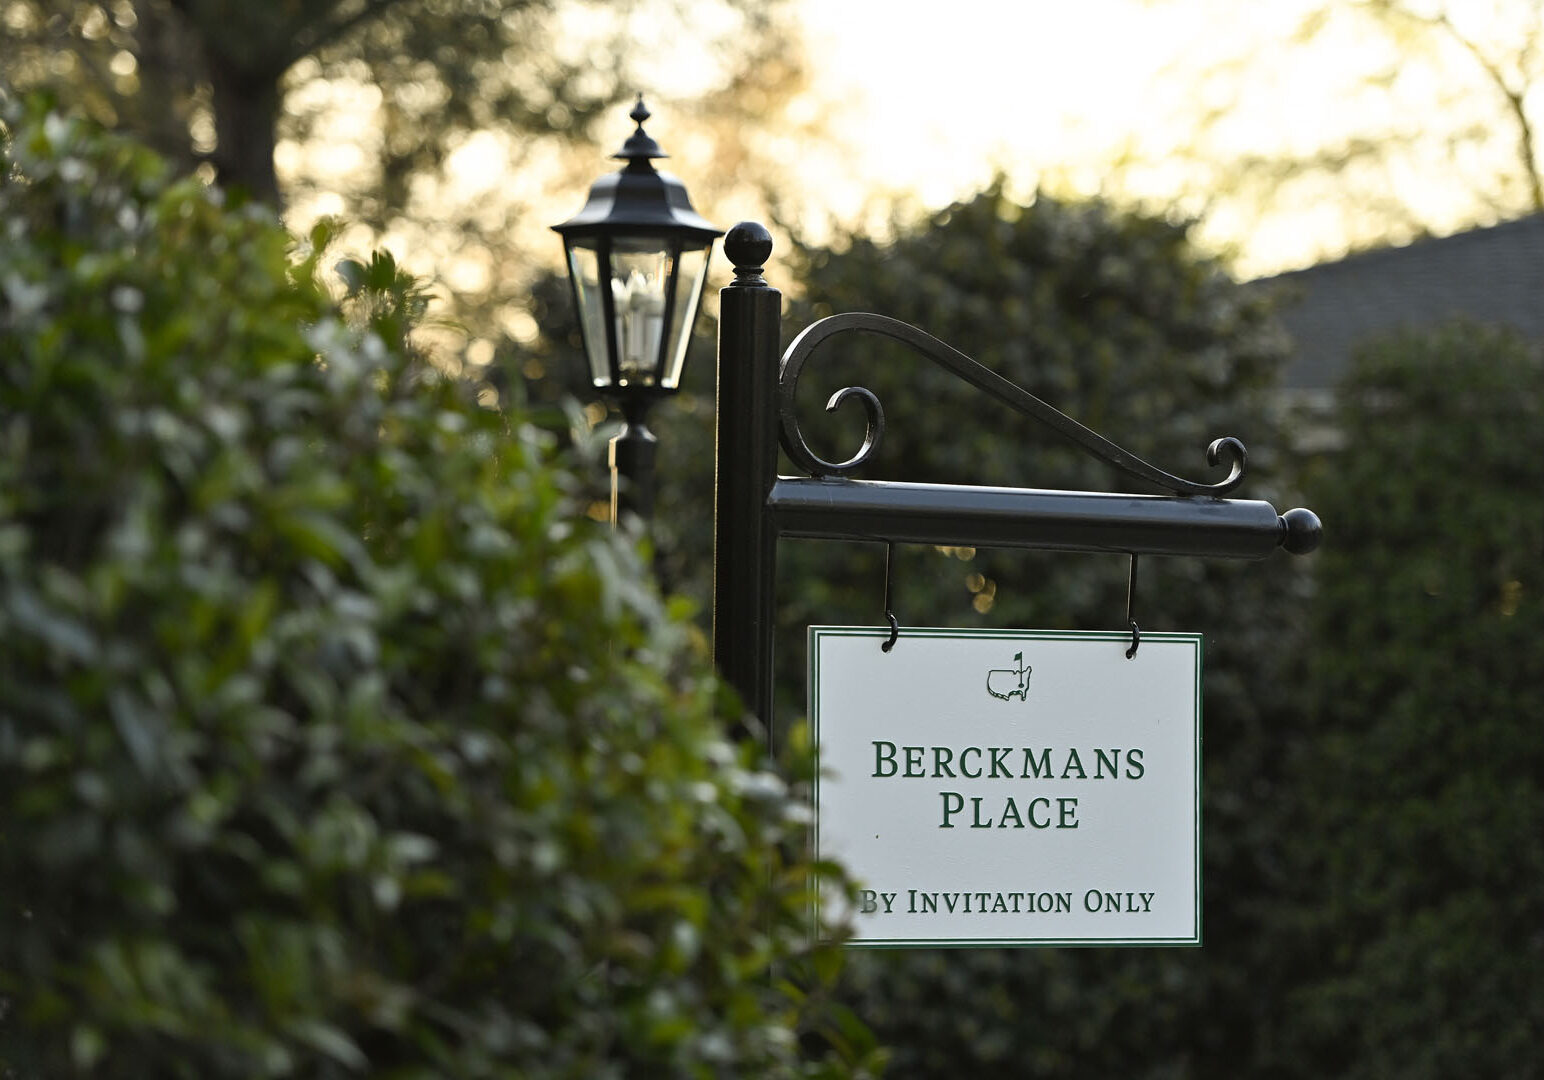 Signage at Berkmans Place is seen during the Augusta National Women's Amateur, Friday, April 2, 2021.